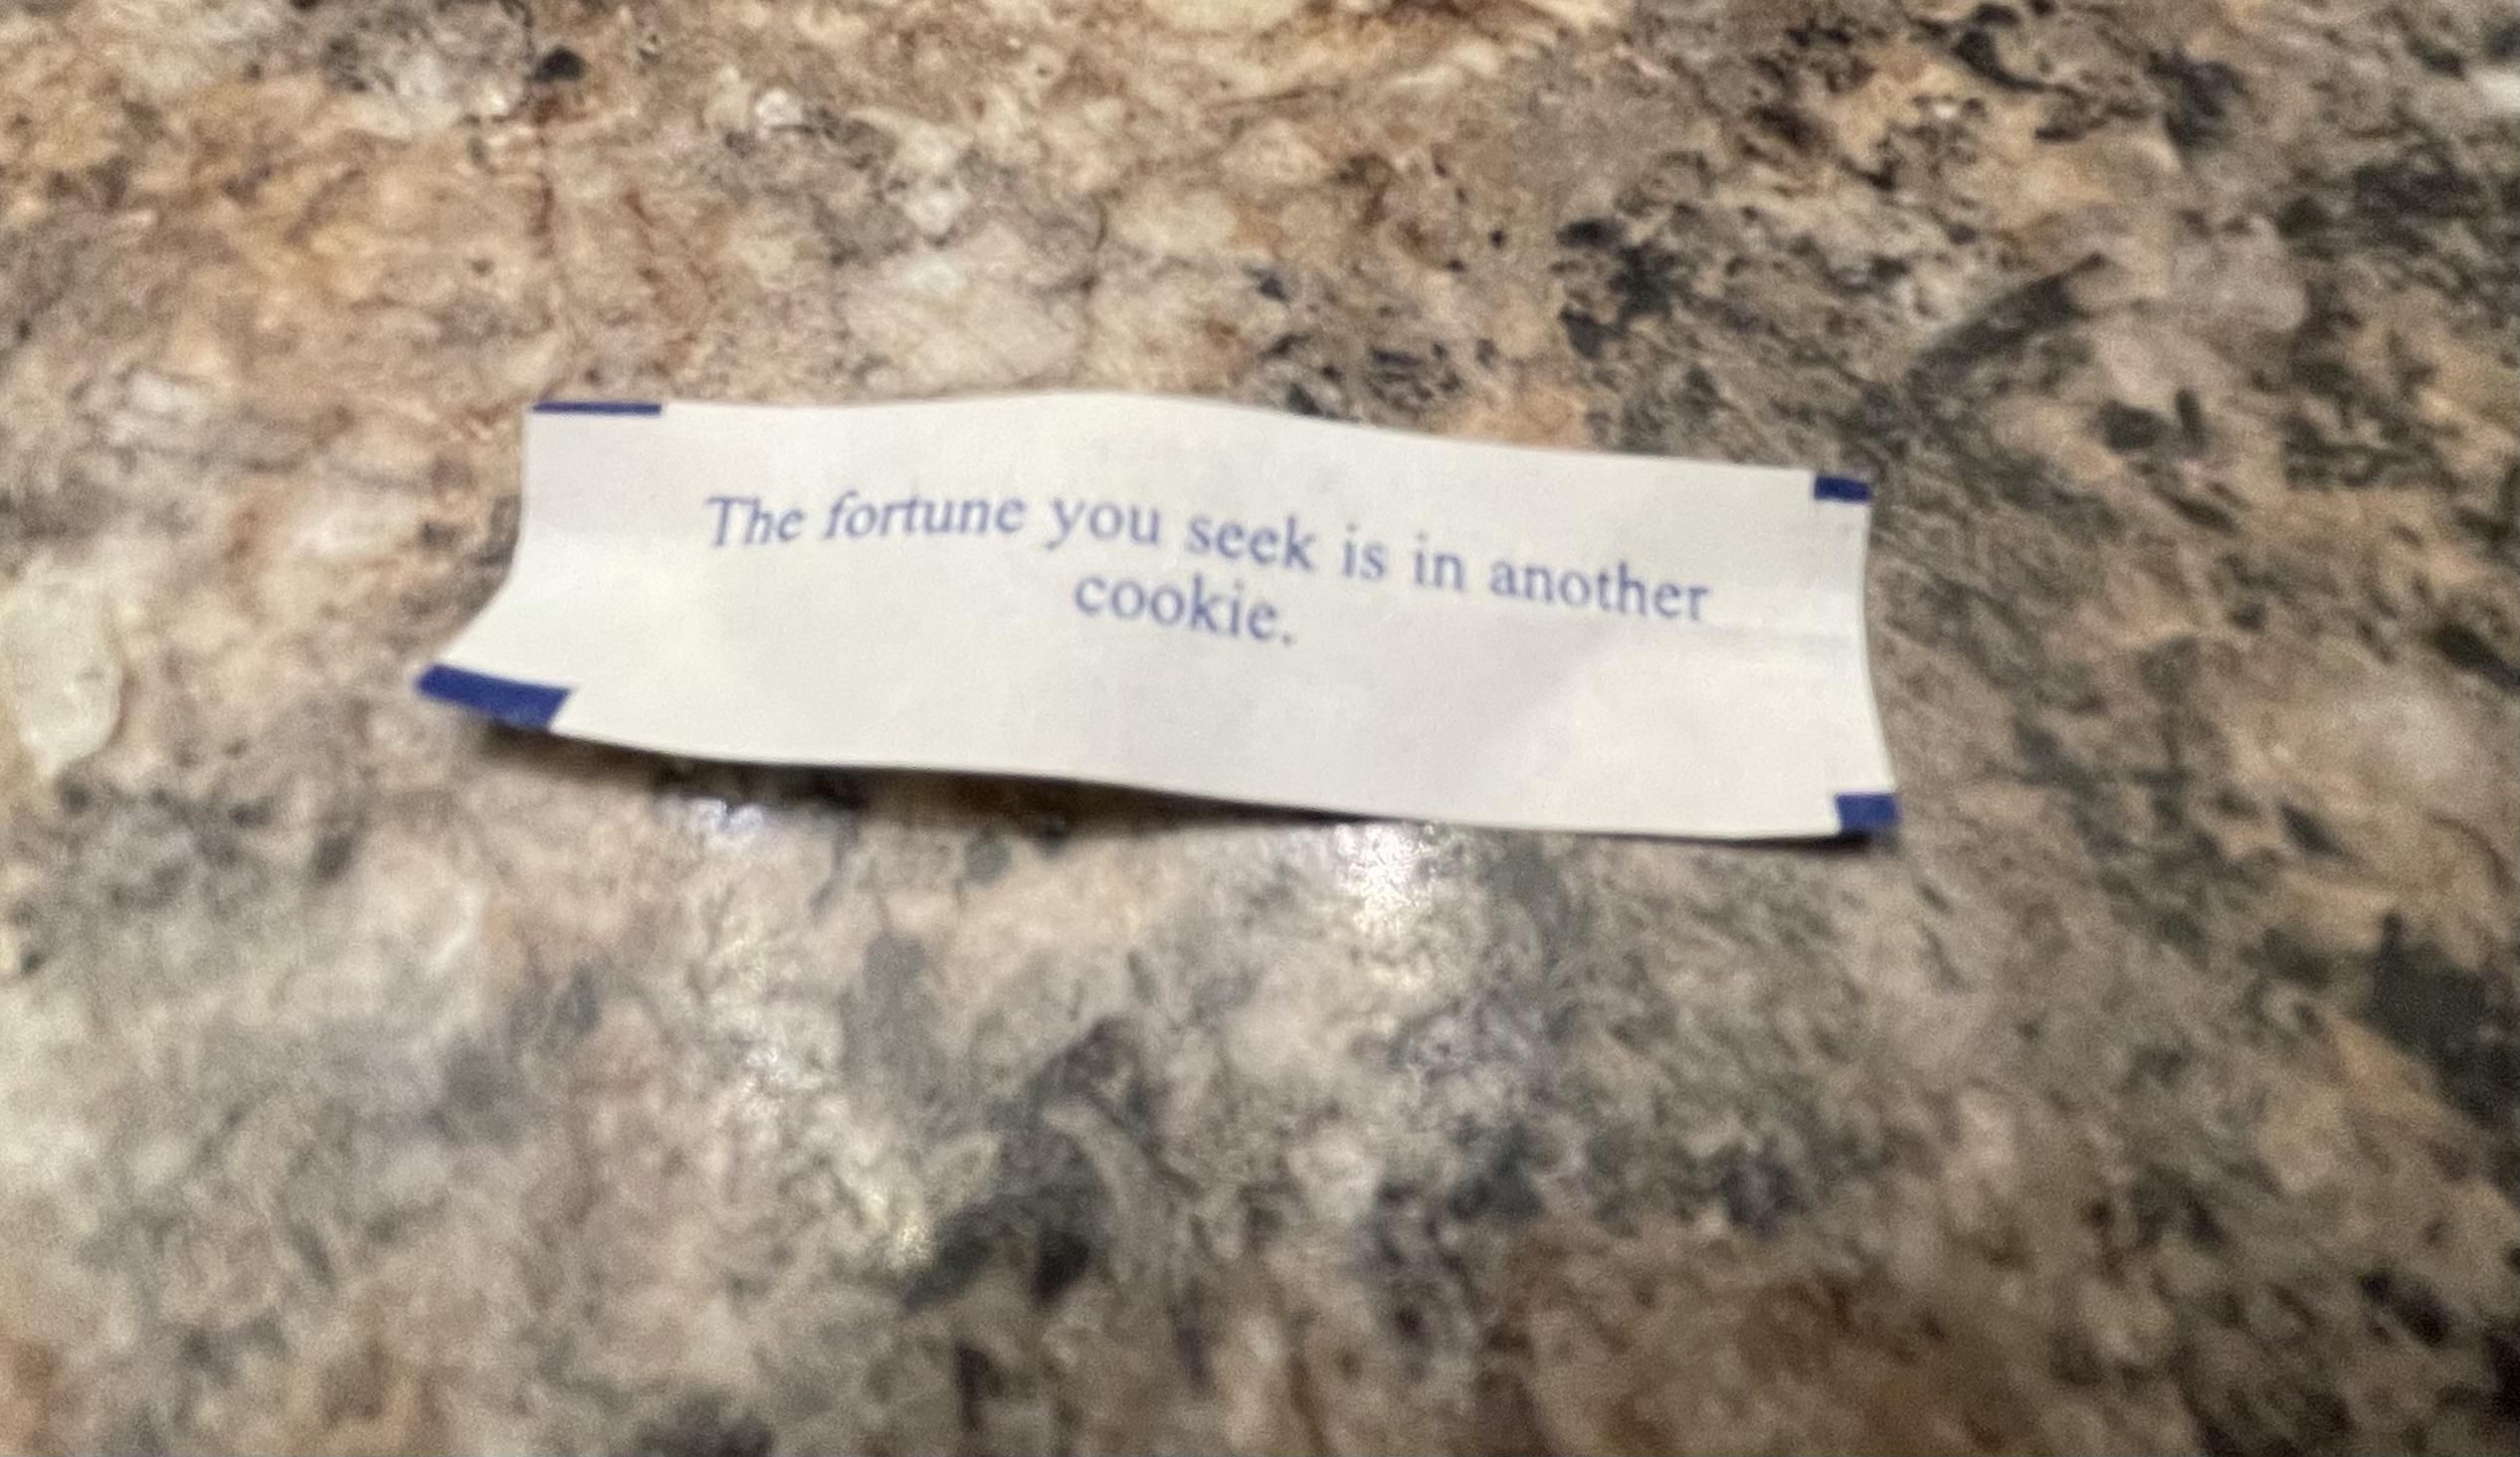 It's the gateway fortune cookie